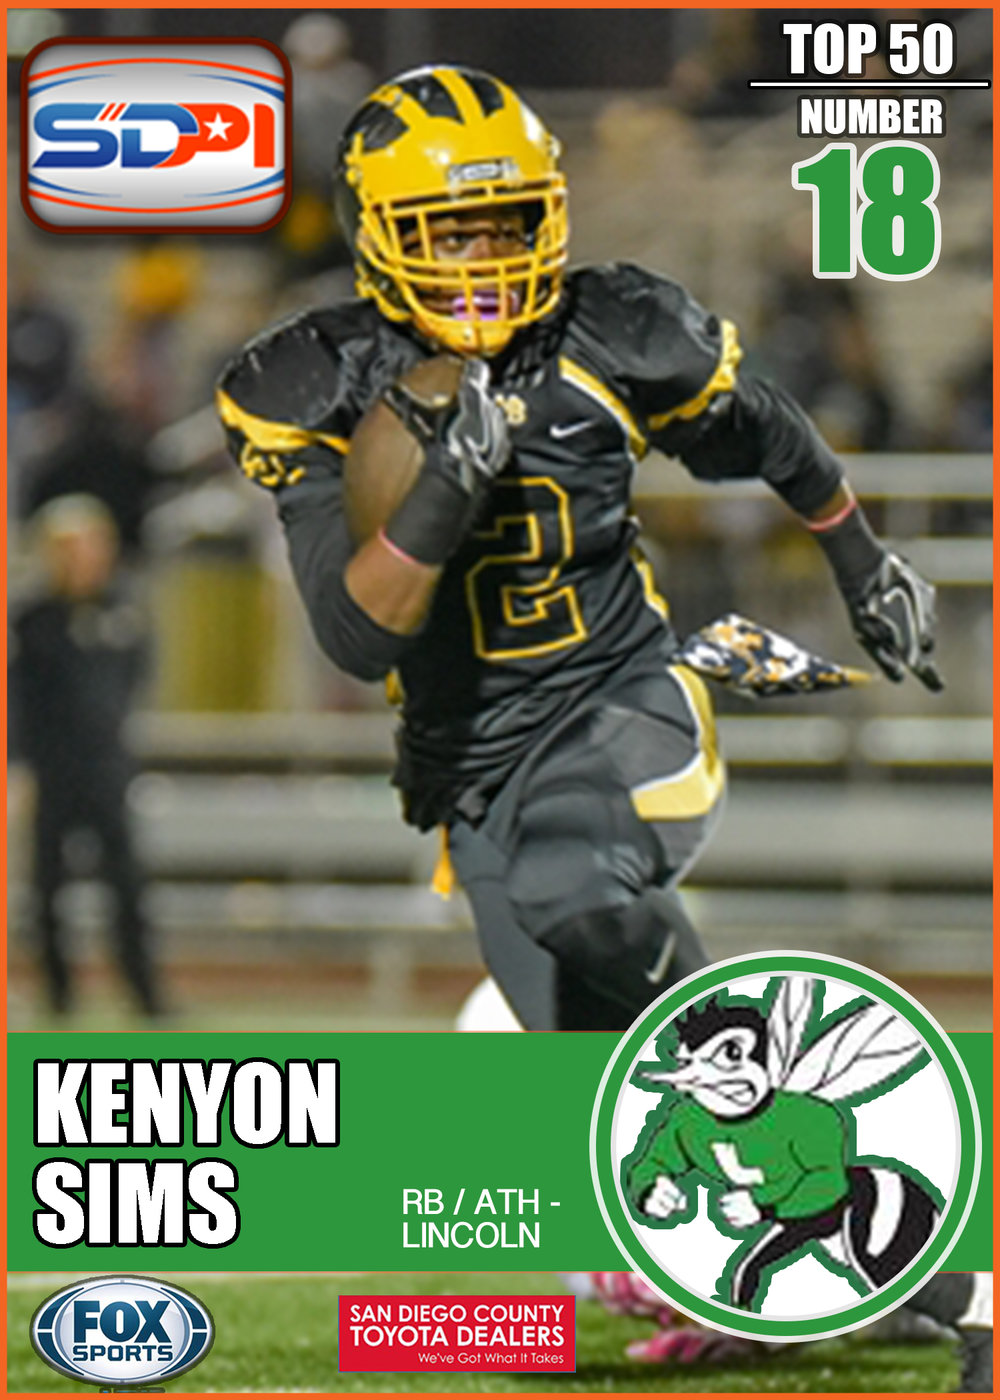 - Kenyon only played in one game for Mission Bay last season. That brief glimpse was all anyone needed to realize his playmaking abilities. He finished that game with an impressive 80 rushing yards on five yards per carry and two TD's, two catches for another 16 yards, and an interception. Sims is bringing his talents to Lincoln High School in 2017.